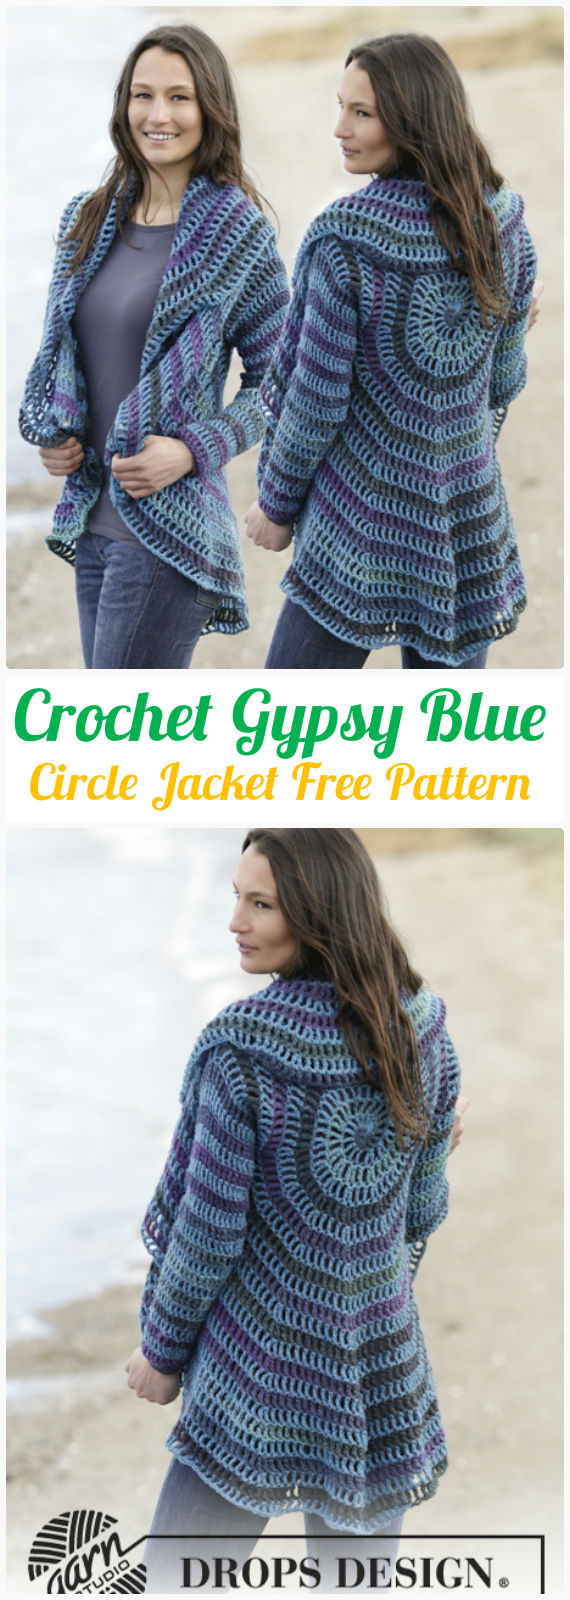 Diy crochet circular vest sweater jacket free patterns diy crochet gypsy blue circle jacket free pattern crochet circular vest sweater jacket patterns bankloansurffo Choice Image